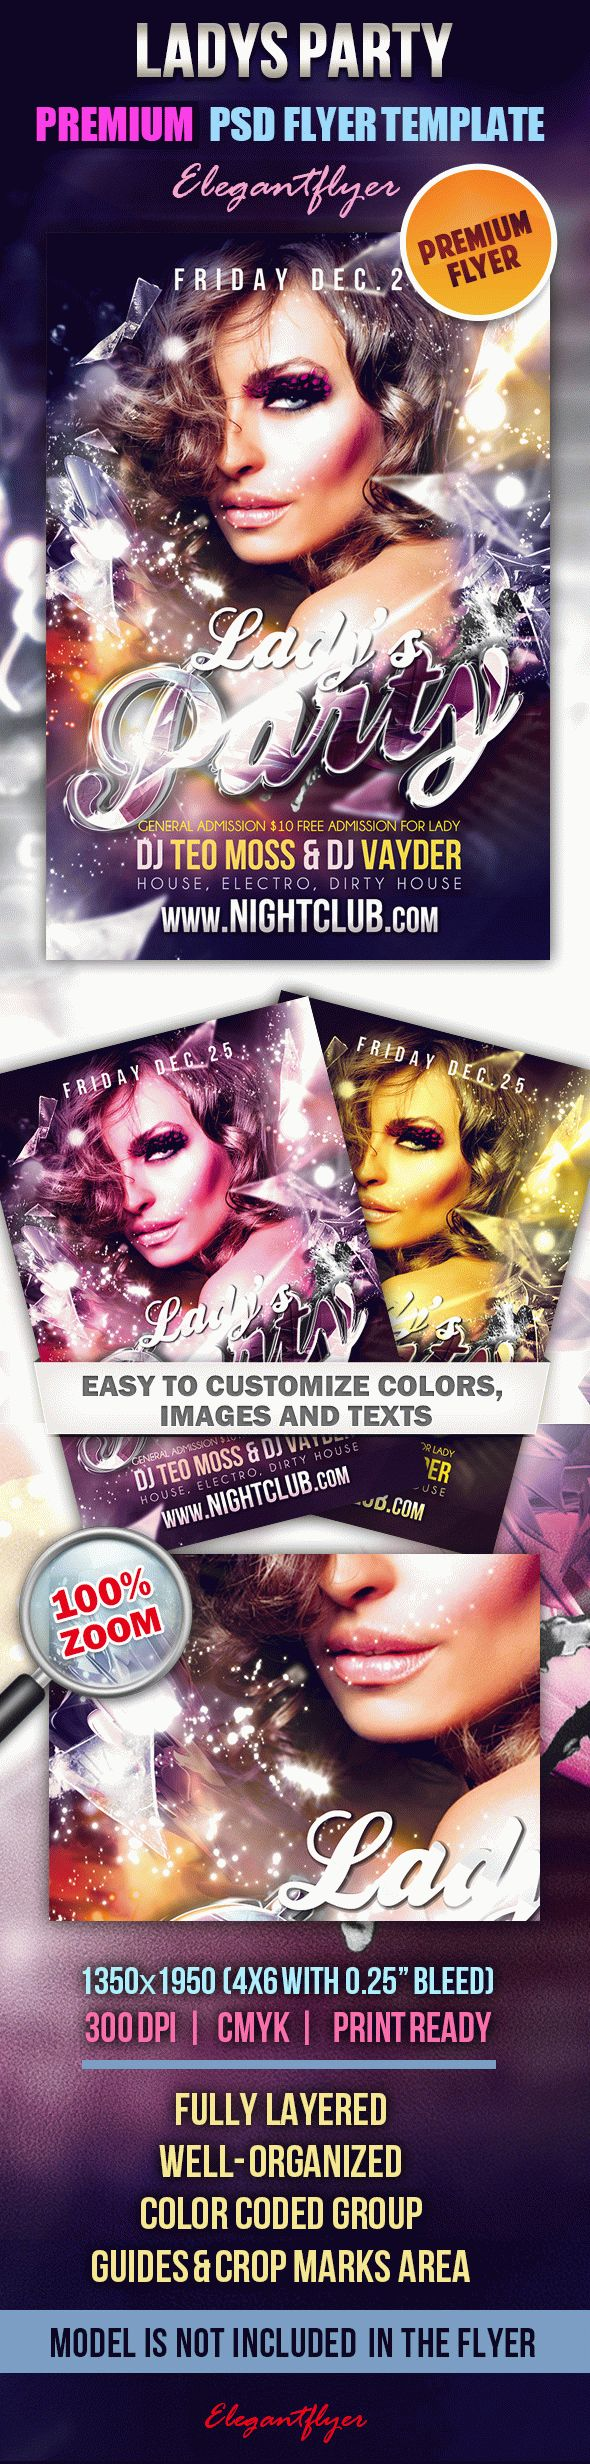 Ladys Party – Premium Club flyer PSD Template